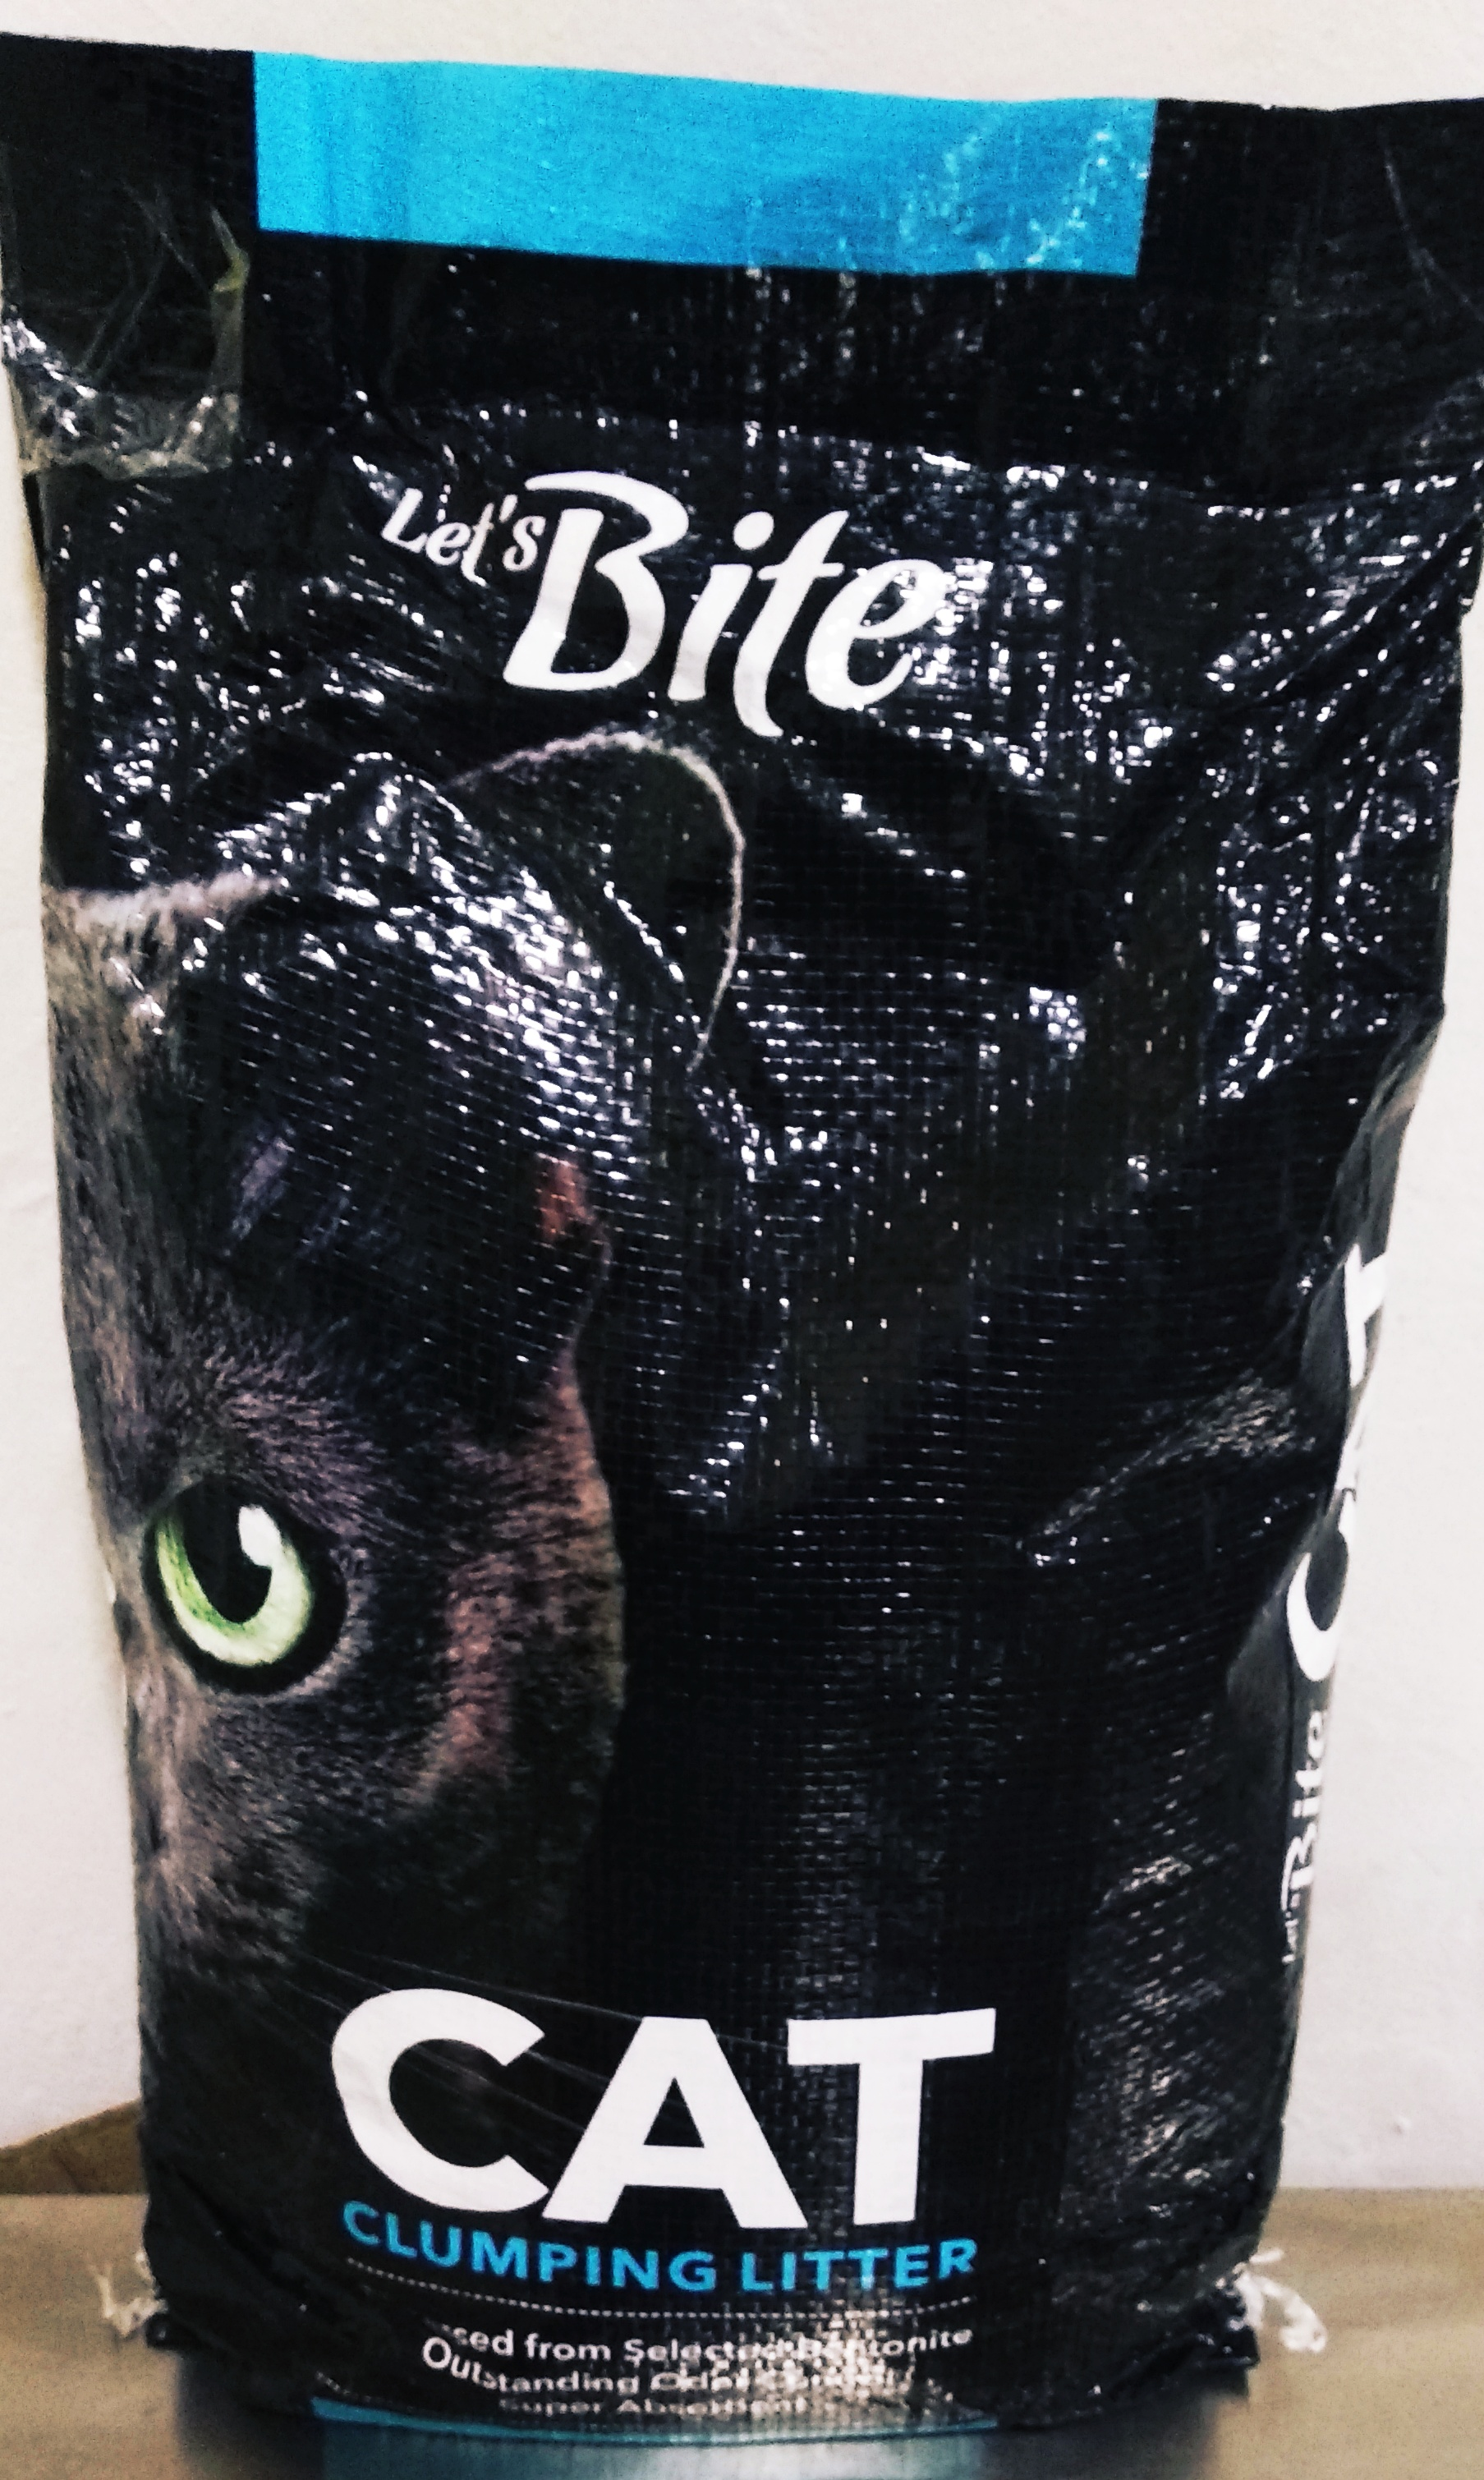 Let's Bite Cat Clumping Litter, Lavender Flavor - 6 Kg